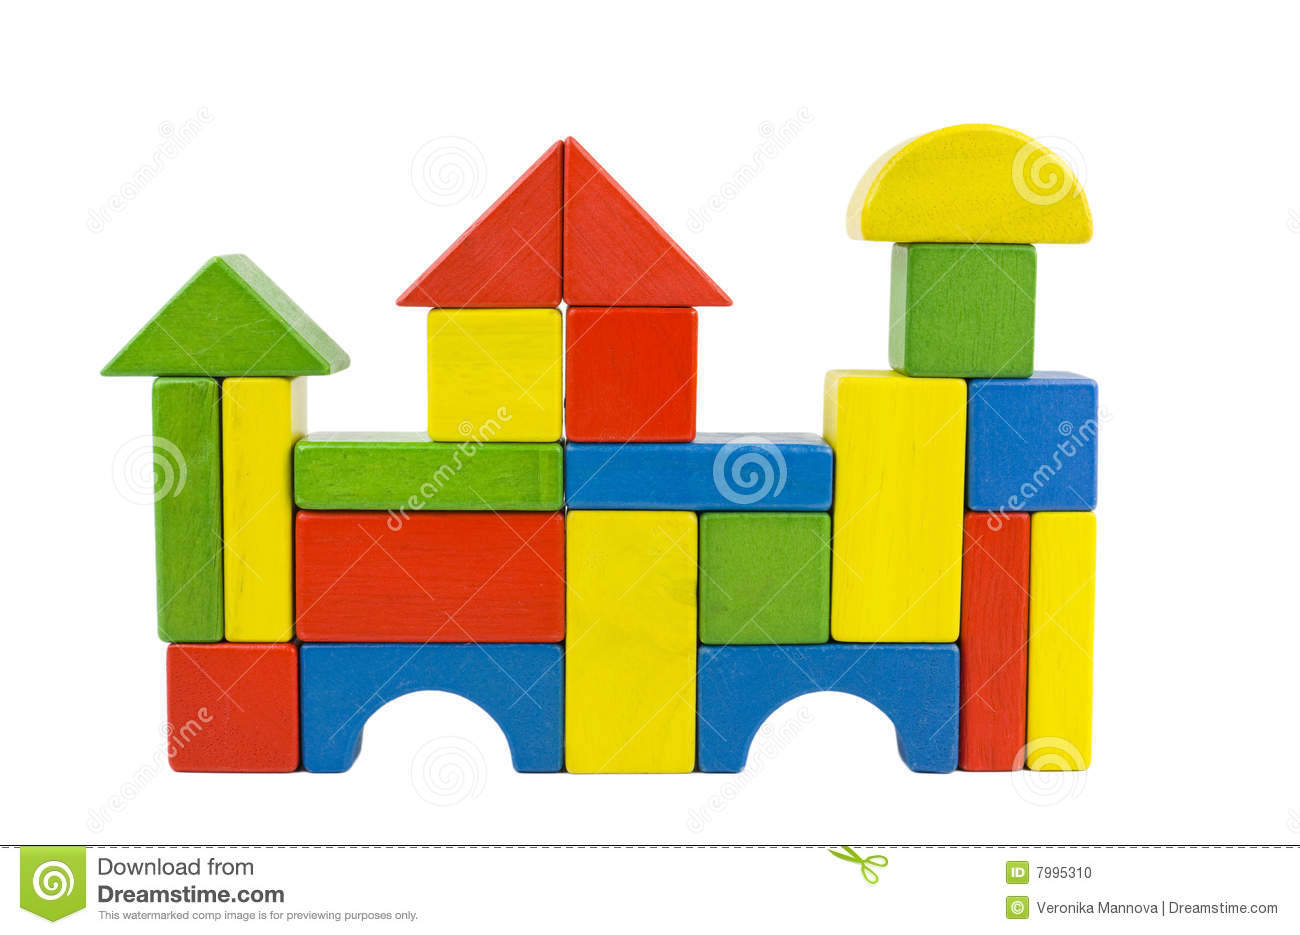 castle house castle created of colorful wooden toy blocs in red